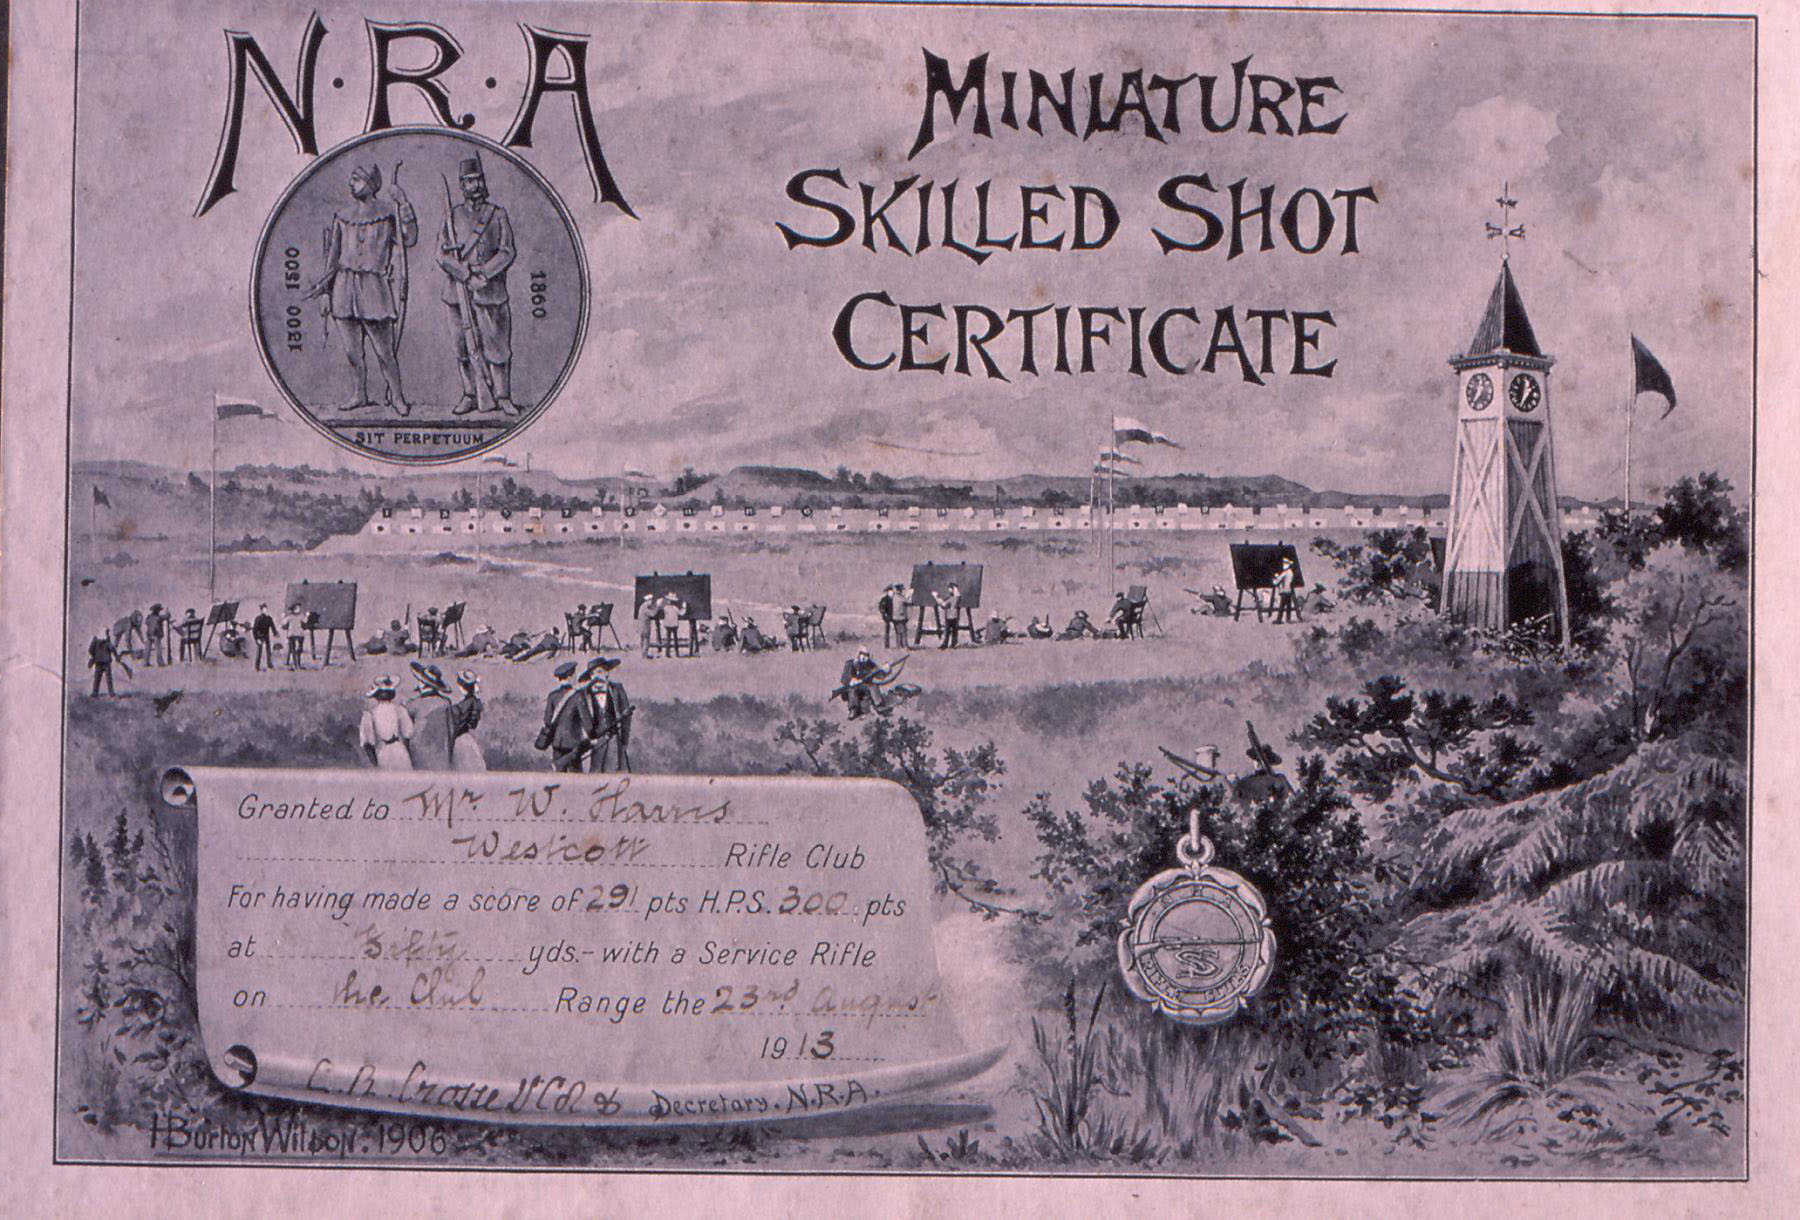 N.R.A. Miniature Skilled Shot Certificate awarded to W. Harris 1913